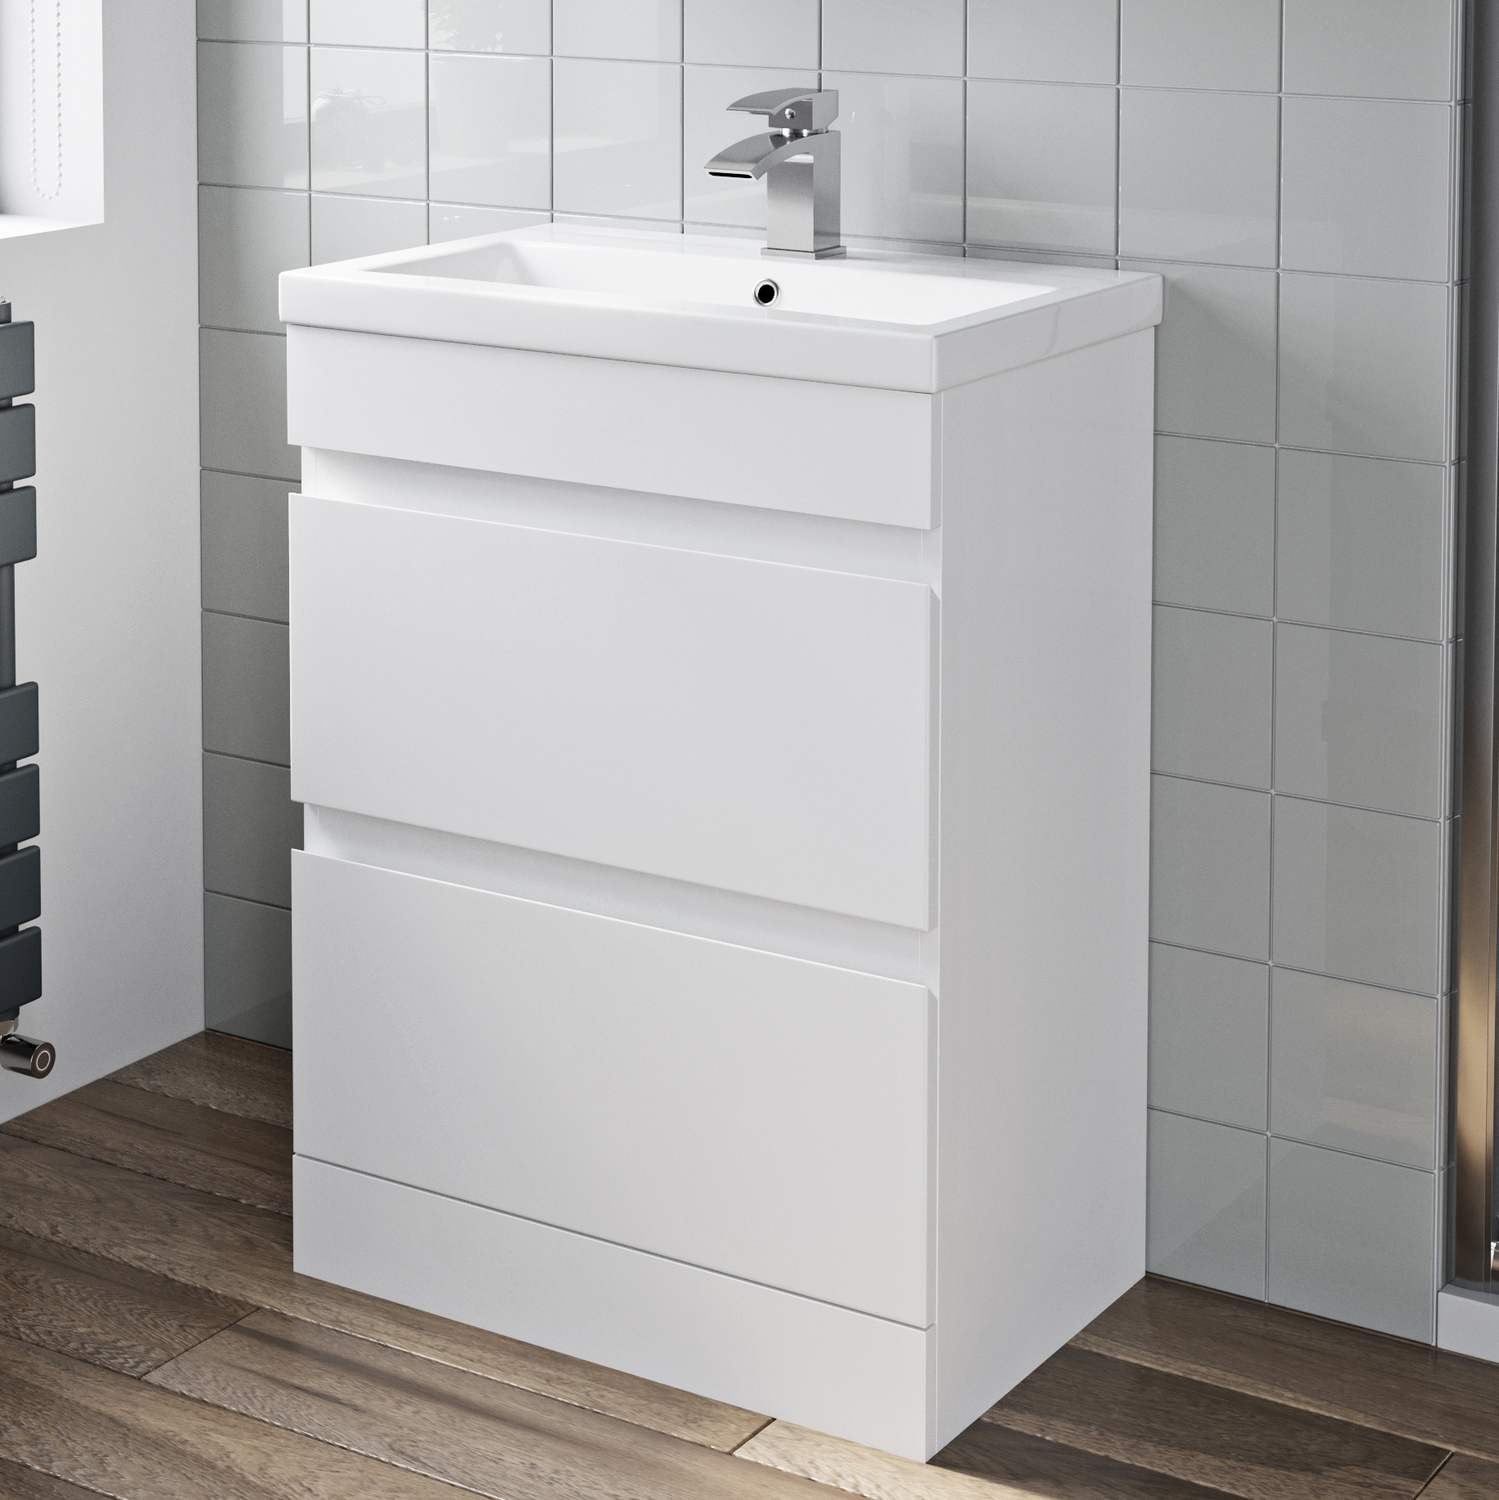 Details About 600mm Bathroom Vanity Unit Basin Storage 2 Drawer Cabinet Furniture White Gloss for measurements 1499 X 1500